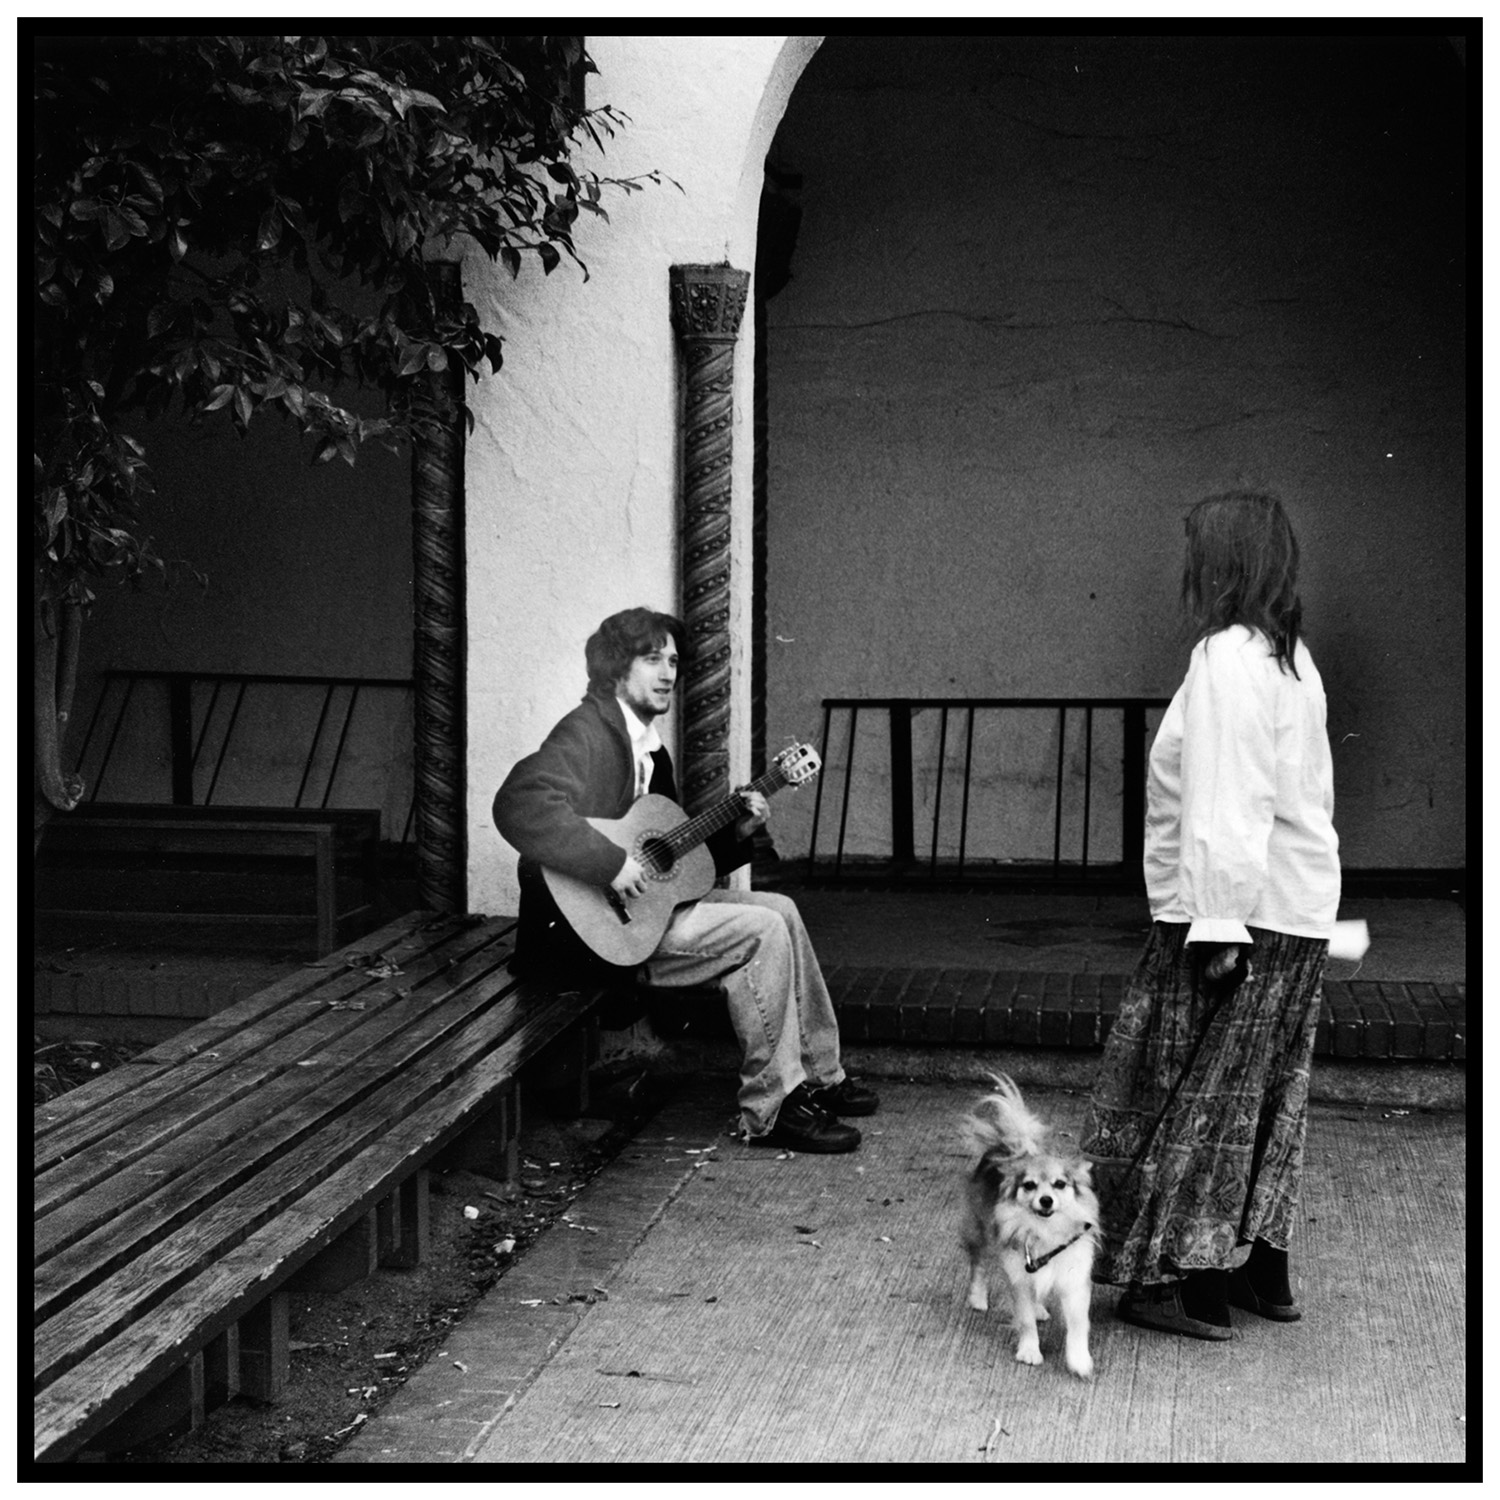 A Little Street Music #71